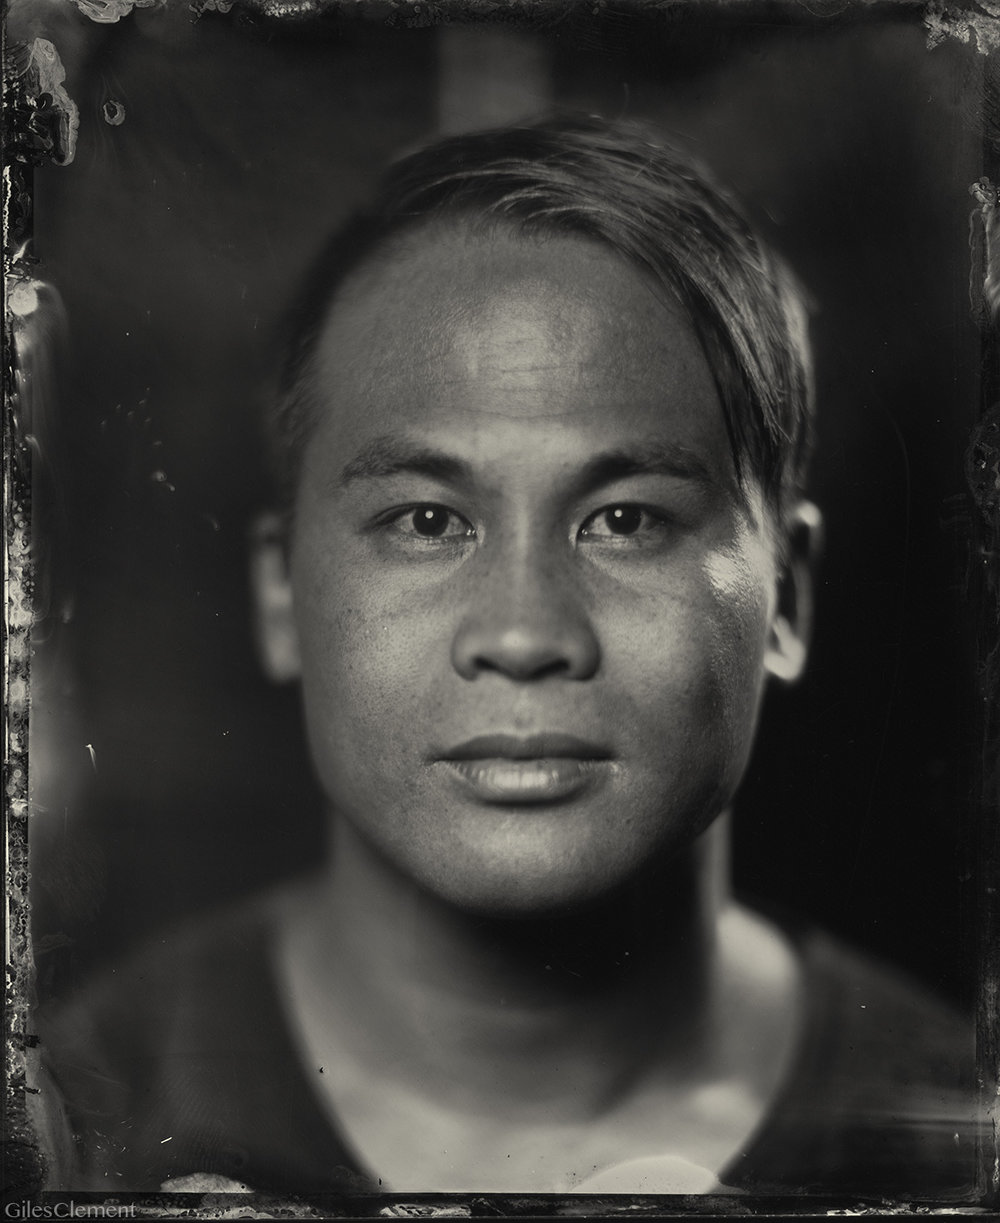 This weekend I received my first tintype portrait in the mail by photographer   @gilesclement  , and it was really special to open the box and hold it in my hand for the first time. I know this sounds cheesy, but I'm pretty sure I held my breath as I was opening the box just like a kid opening up a Christmas present. It made me realize how spoiled we've become in the digital age, and how we expect and demand things instantaneously all the time.      Tintype predates film and was widely used in the 1860's and 1870's, so it is quite a unique experience if you ever get the opportunity to have one taken of you. It is by far the most memorable photo that I've ever had taken of me, especially since I spend most of the time on the other side of the camera these days.      I'm obsessed with handmade crafts, and inspired by people like Giles that are able to make a living doing what they love, creating handcrafted goods that help create deep and meaningful experiences for us. I hope to give this portrait away as a gift one day and have it passed down from generation to generation.